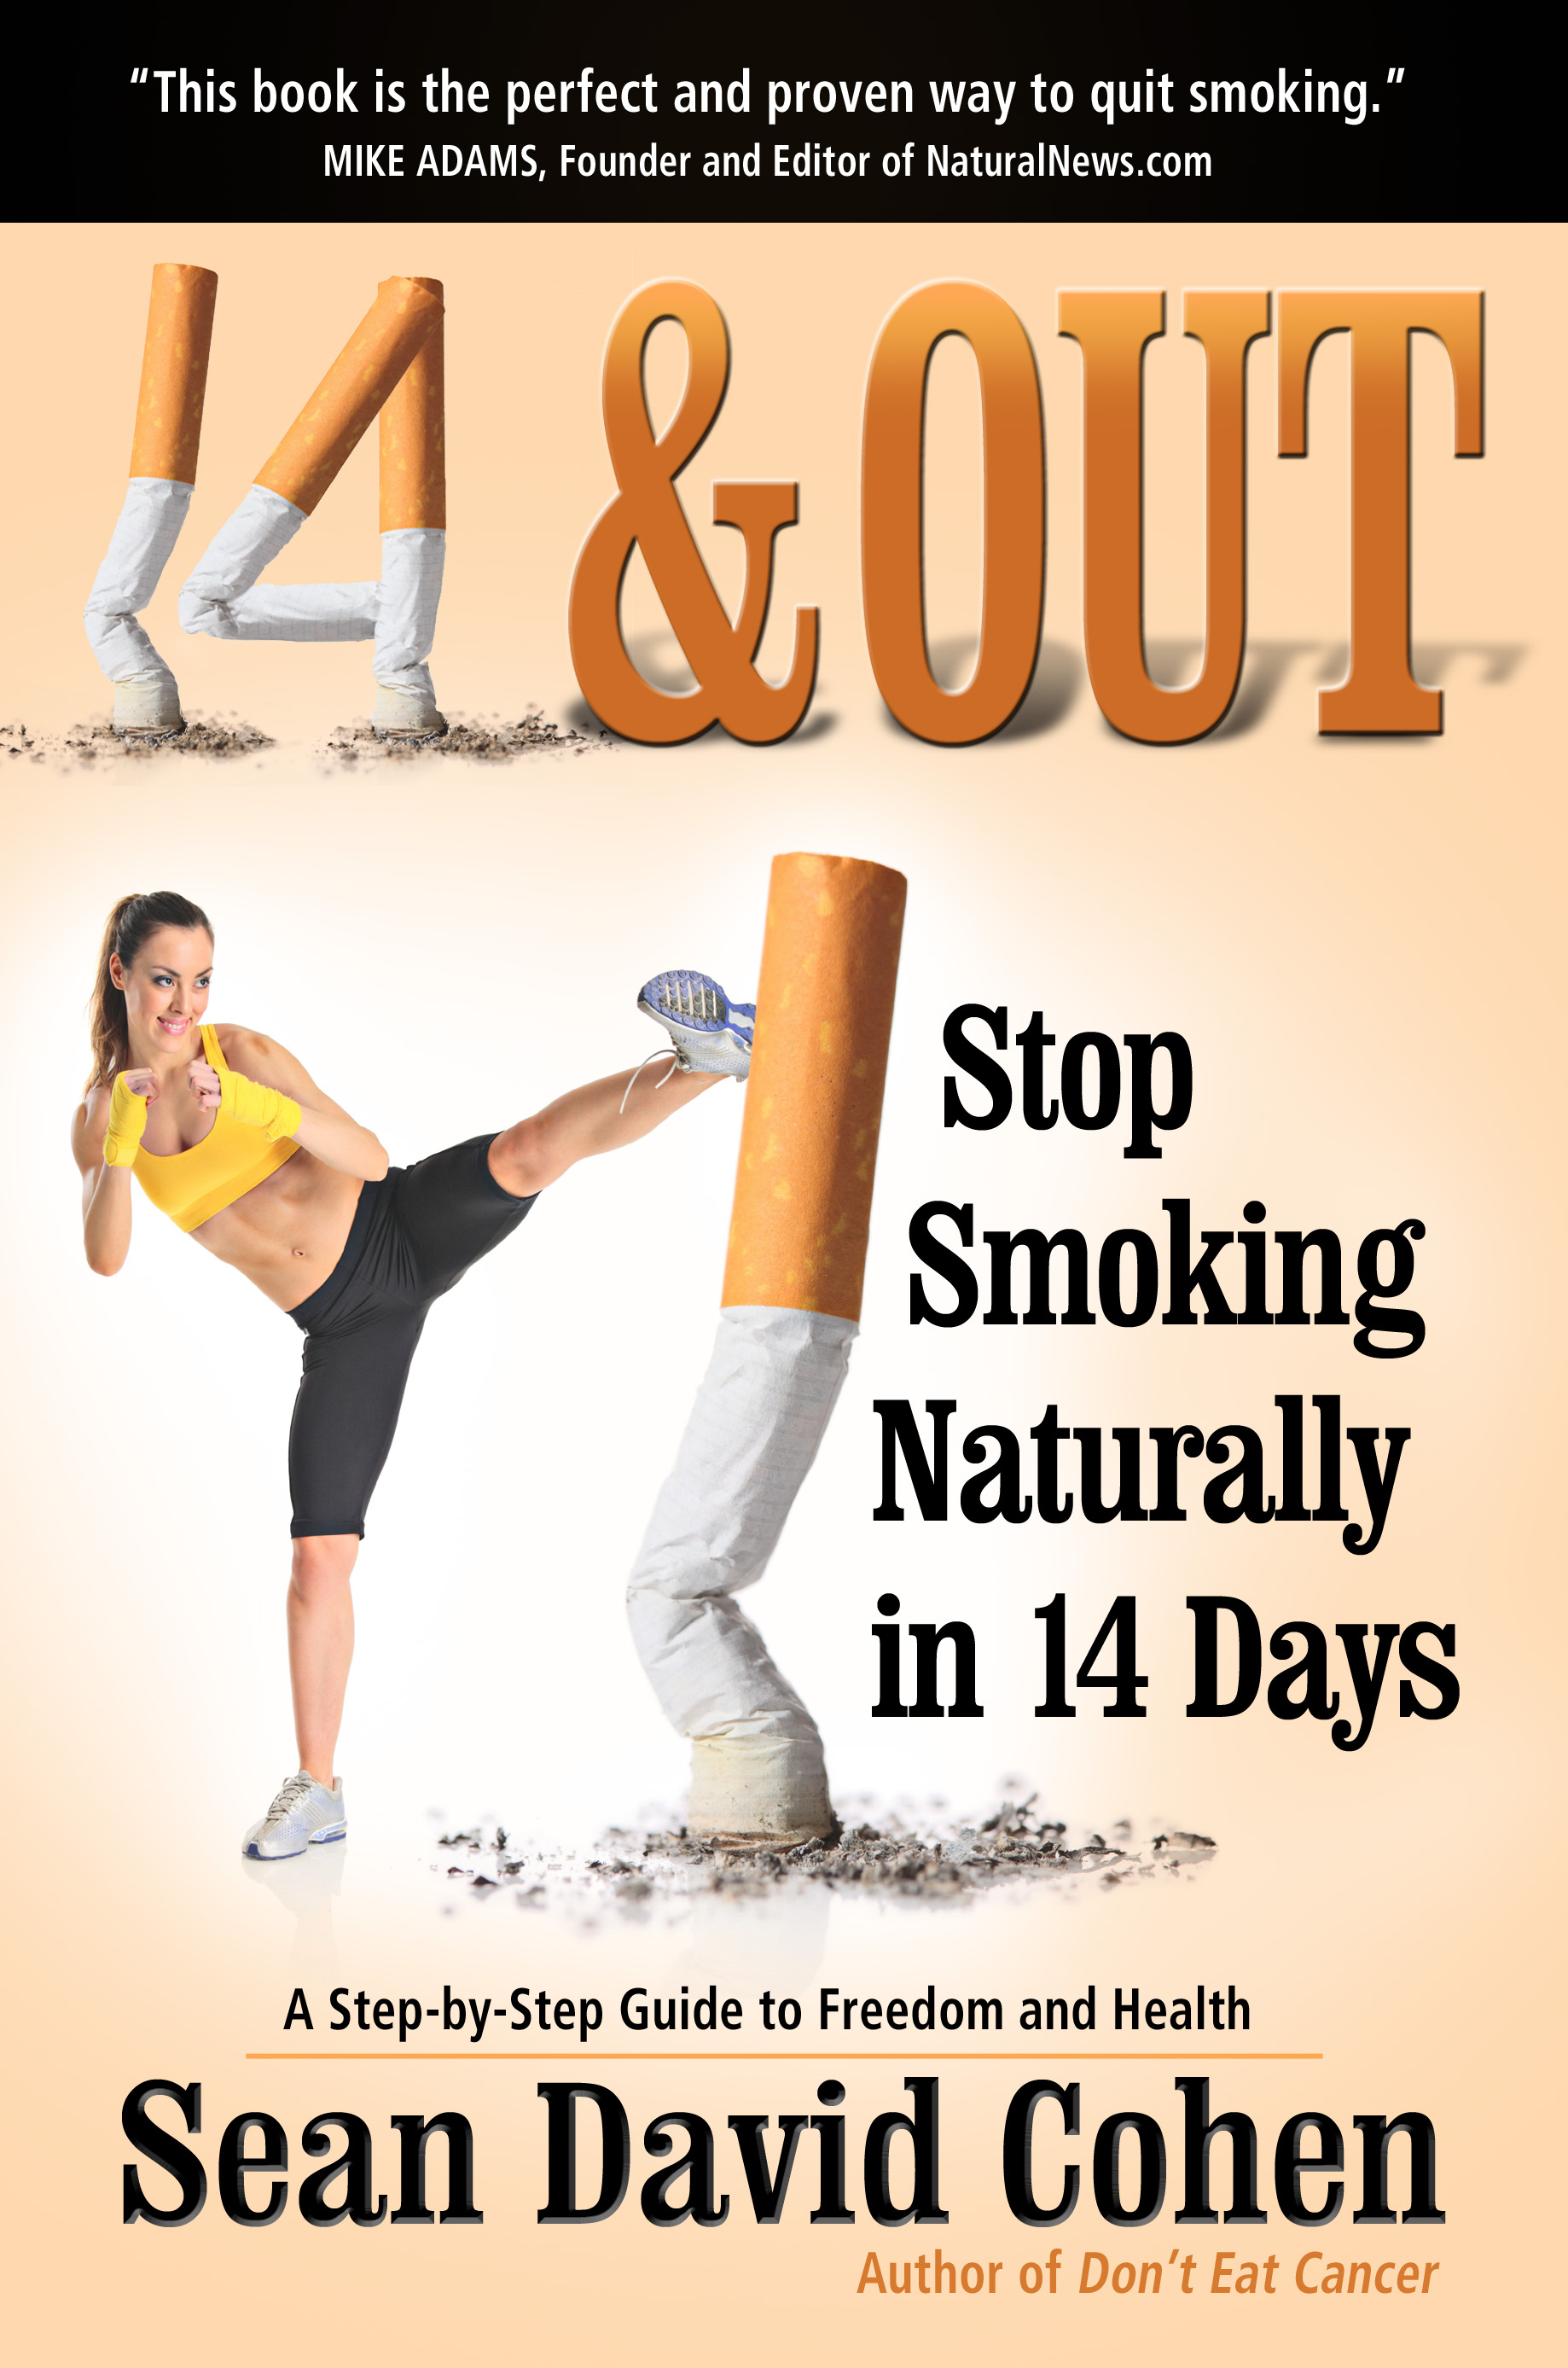 How to stop smoking naturally damage from smoking for 1 ...